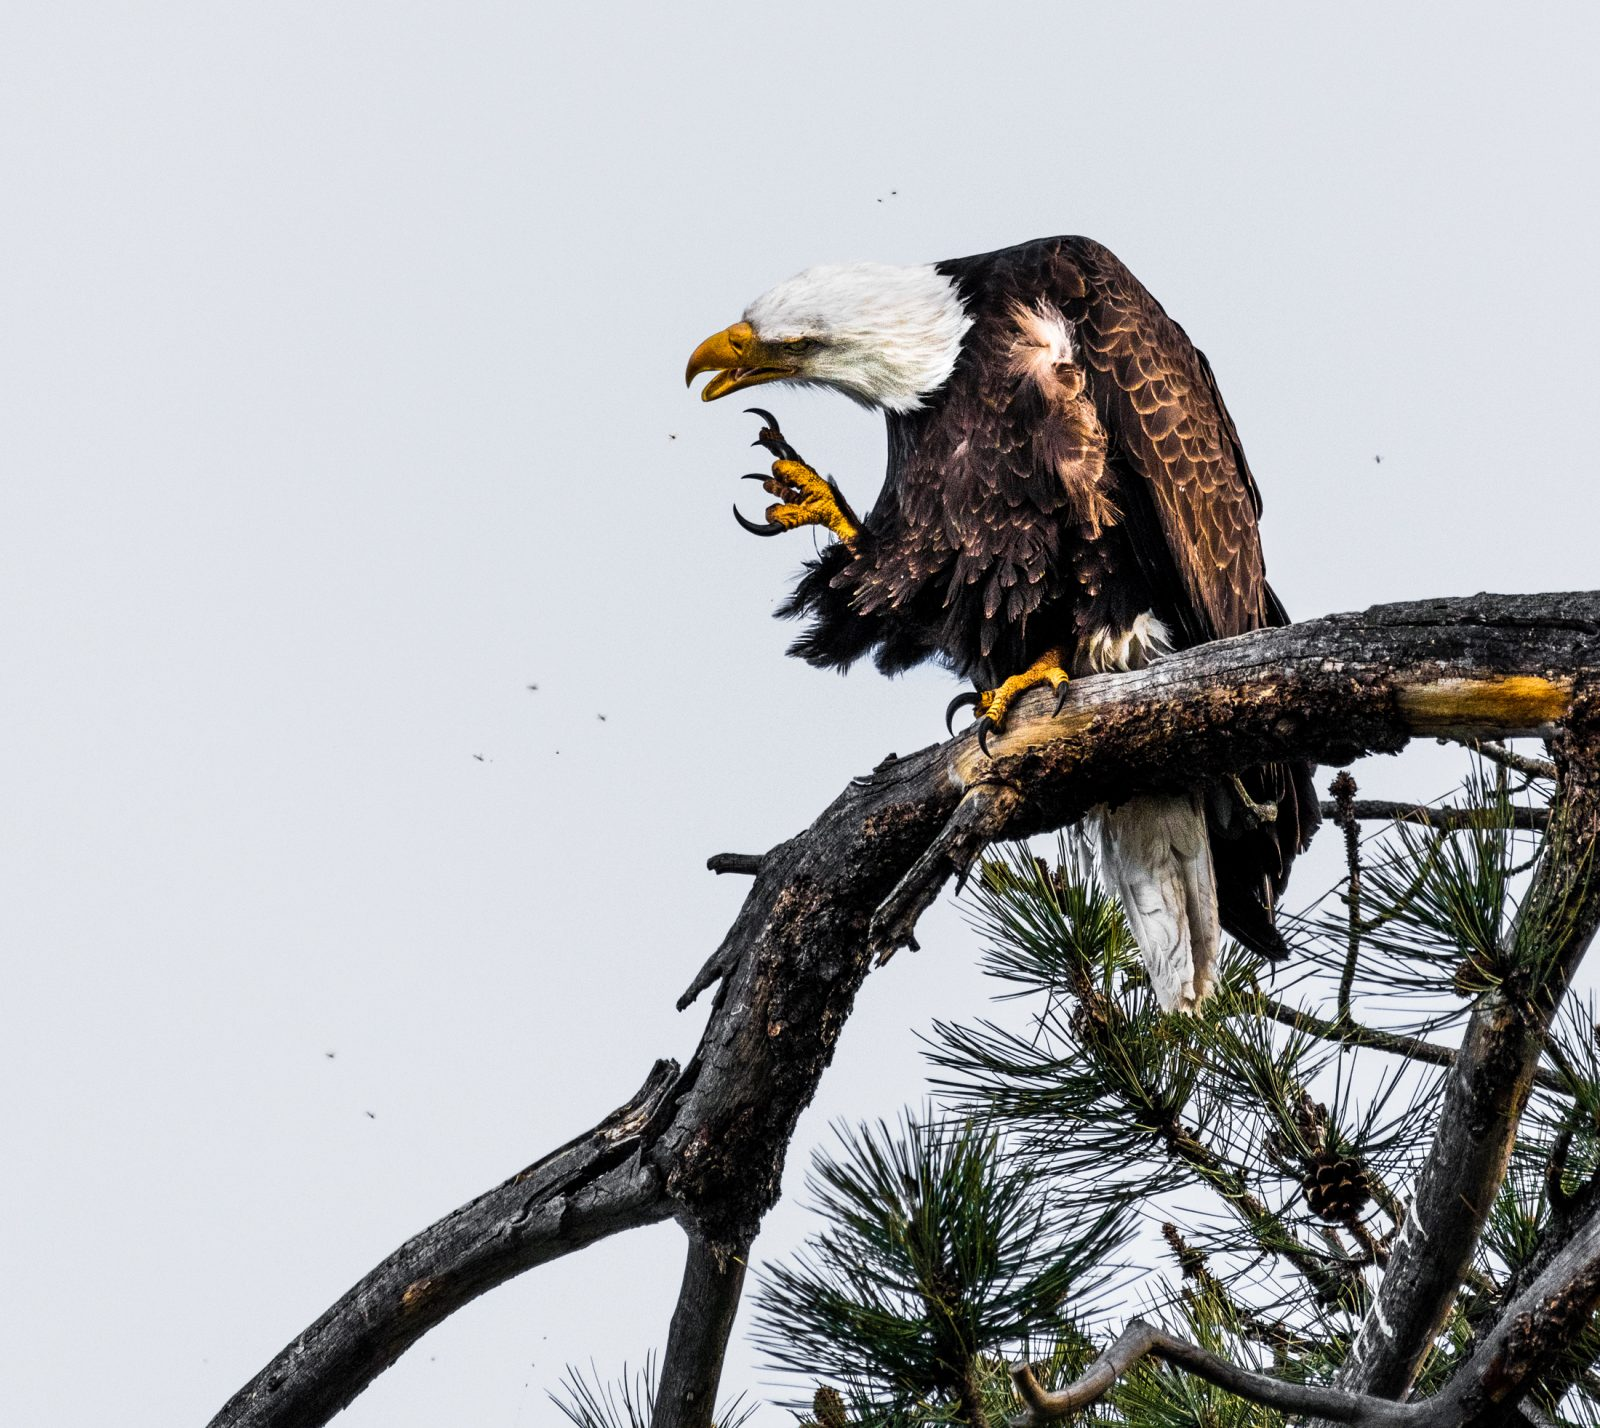 Eagle Fighting With Mosquitos